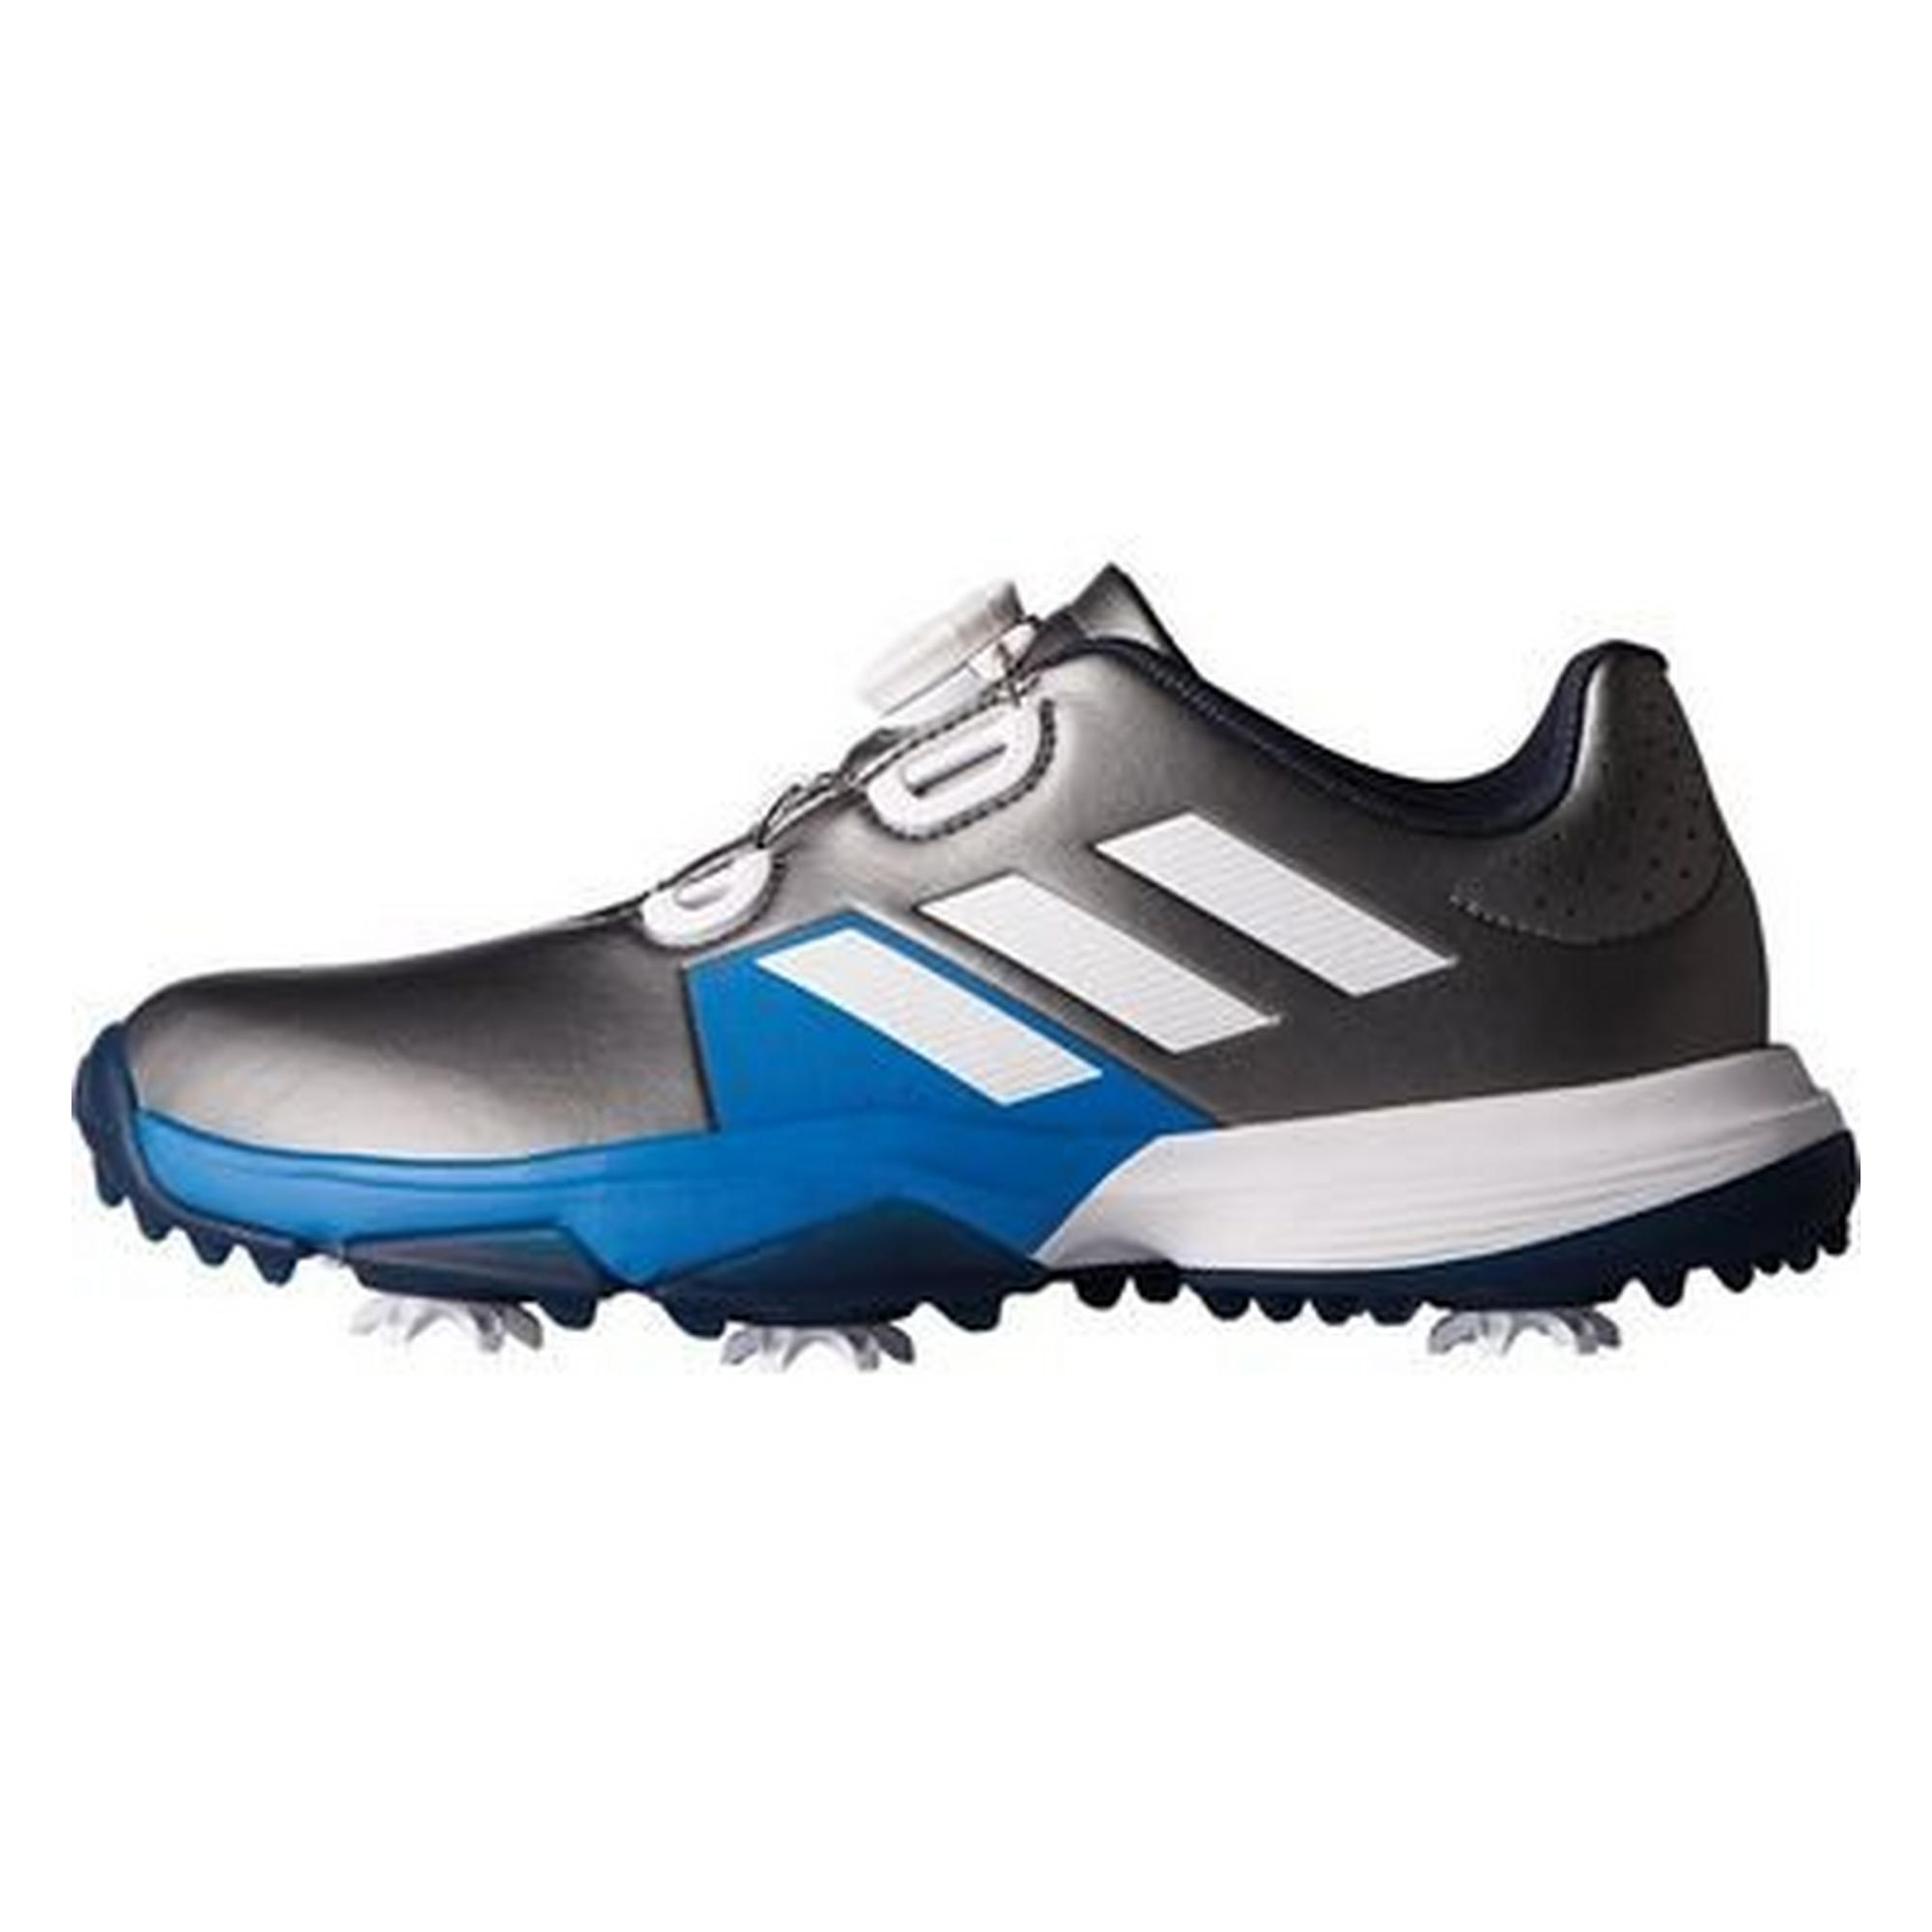 b0d09523a785f Junior Adipower Boa Spiked Golf Shoe - Silver Blue